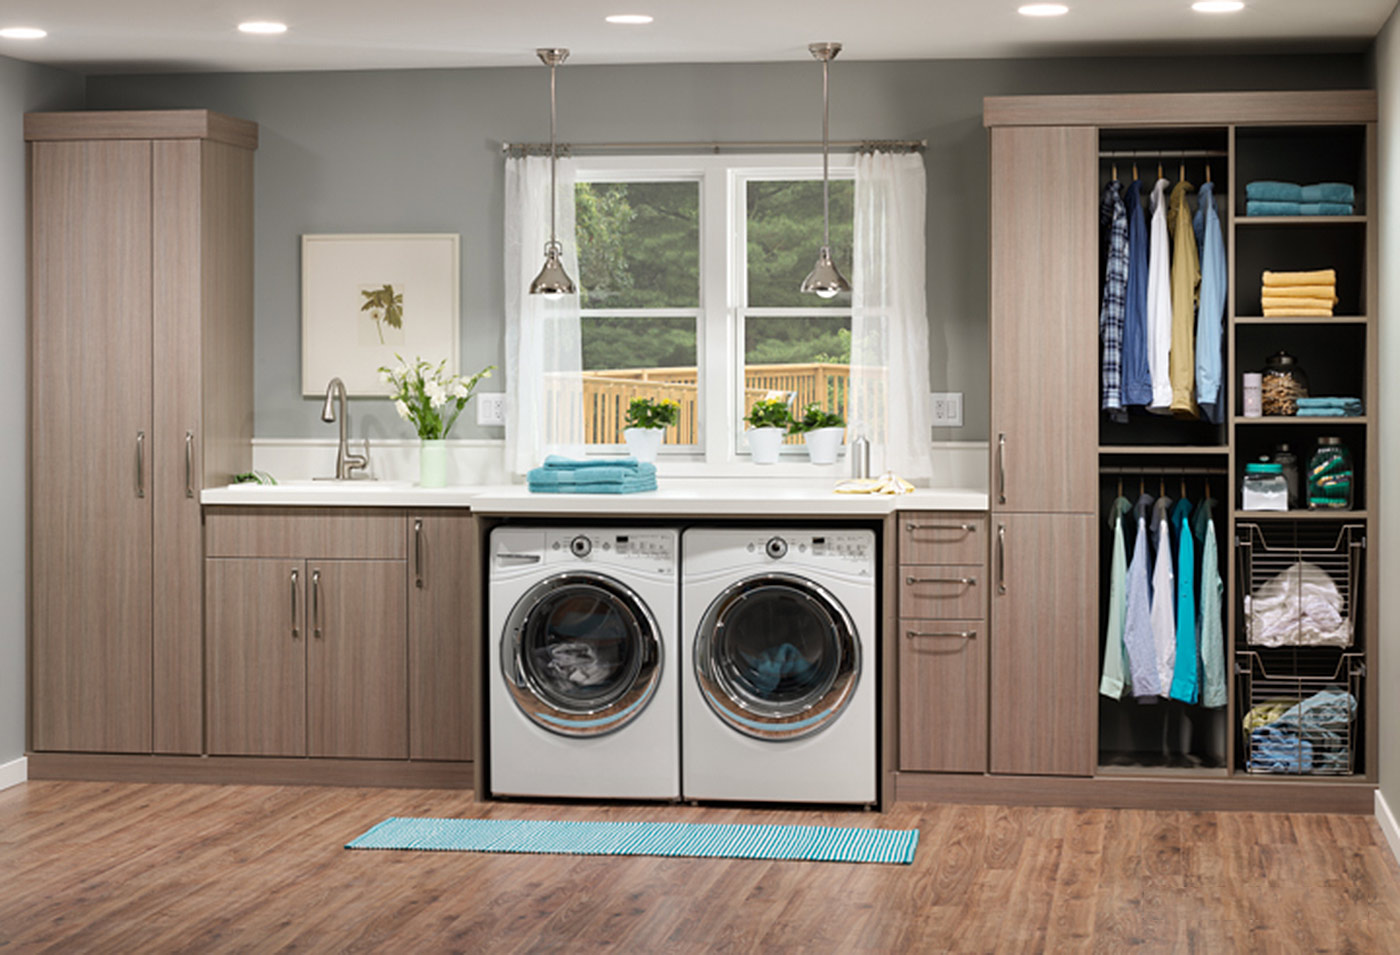 Laundry Room Cabinet Accessories: Innovate Home Org ... on Laundry Cabinets  id=40566